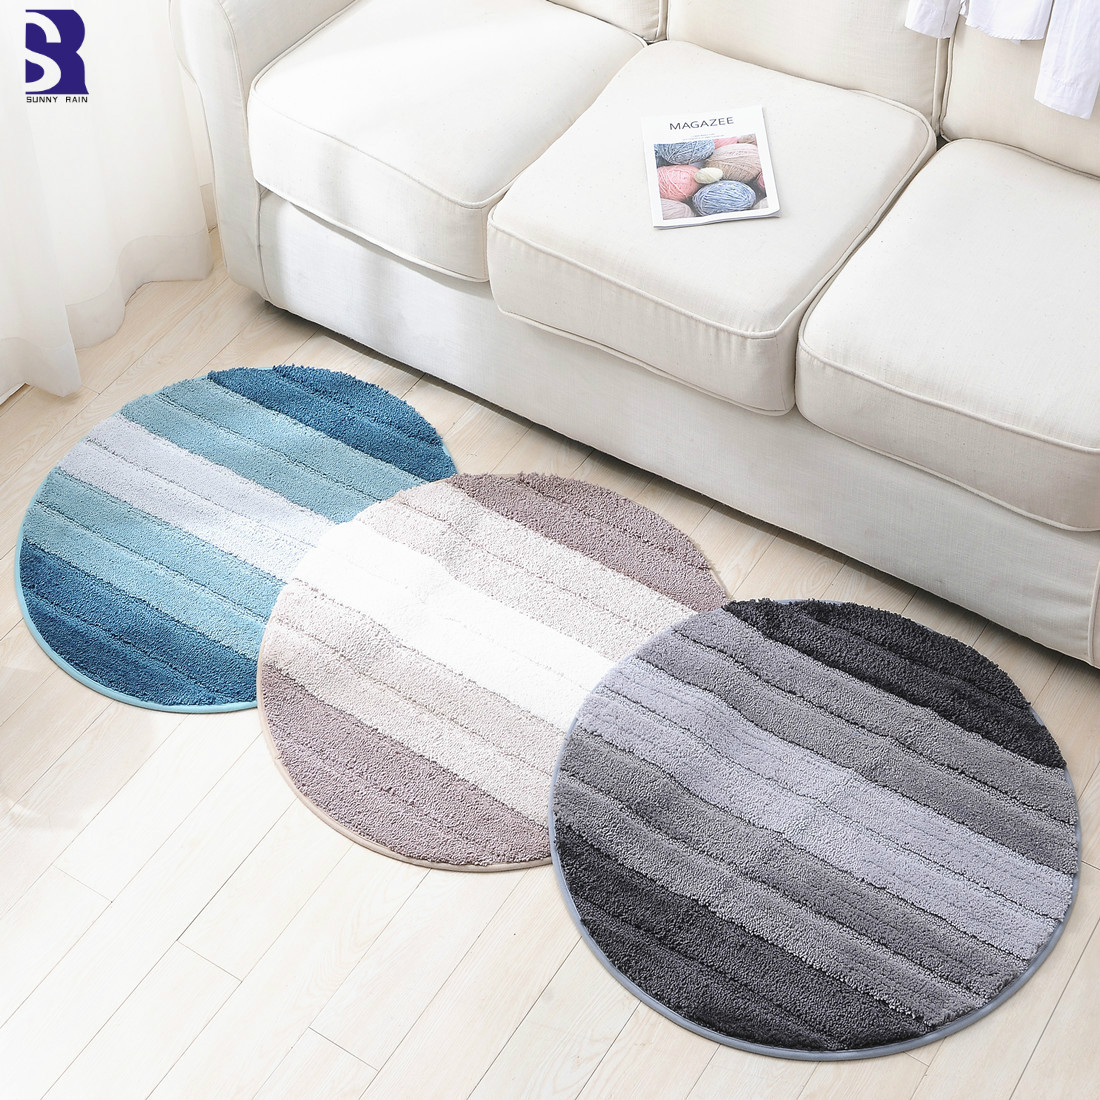 Can Bathroom Rugs Go In The Dryer: SunnyRain 1 Piece Chenille Round Floor Rug Bath Mat Anti